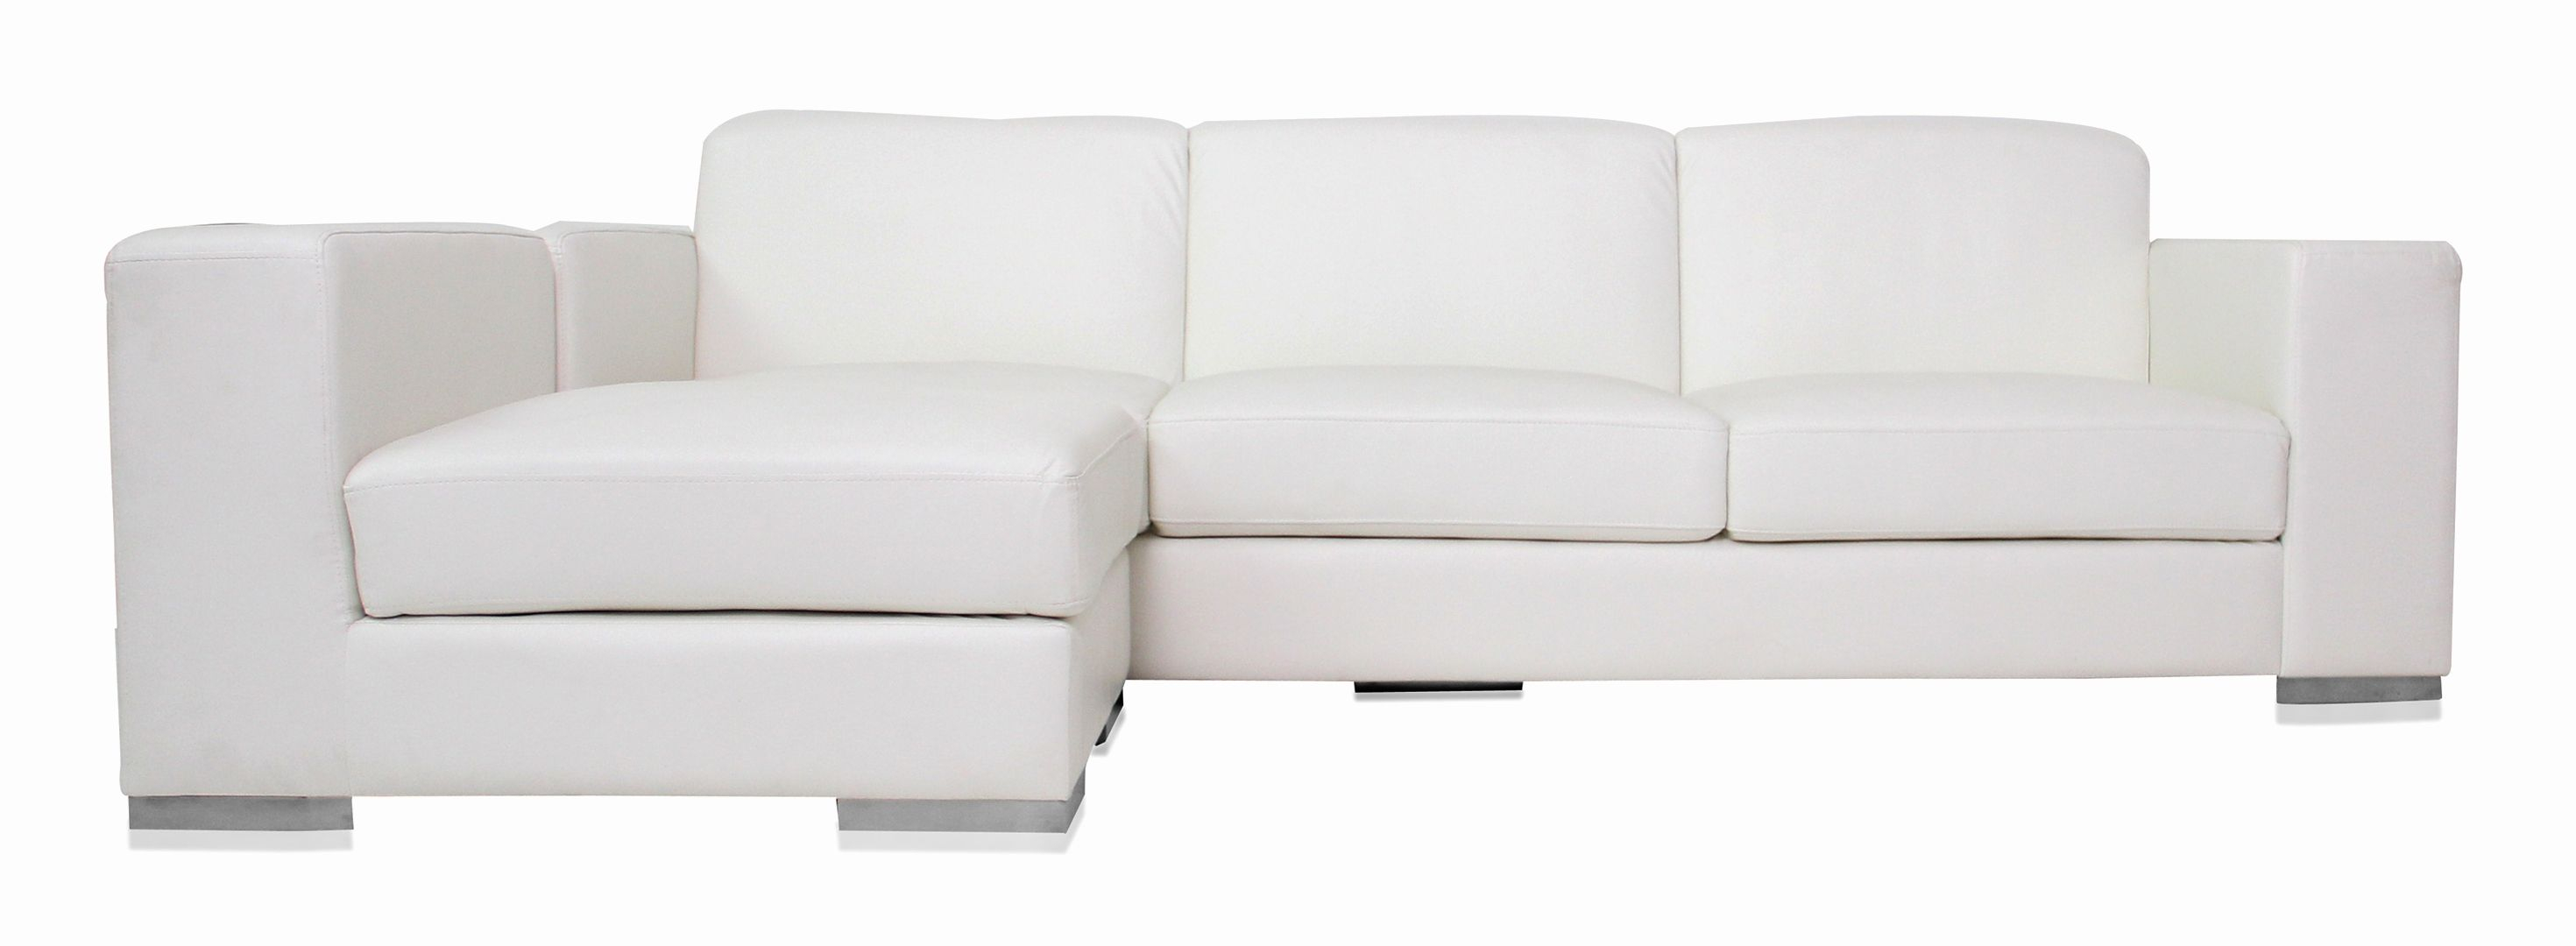 Pin Great Sofas On Contemporary Sofa White Leather for size 2940 X 1080